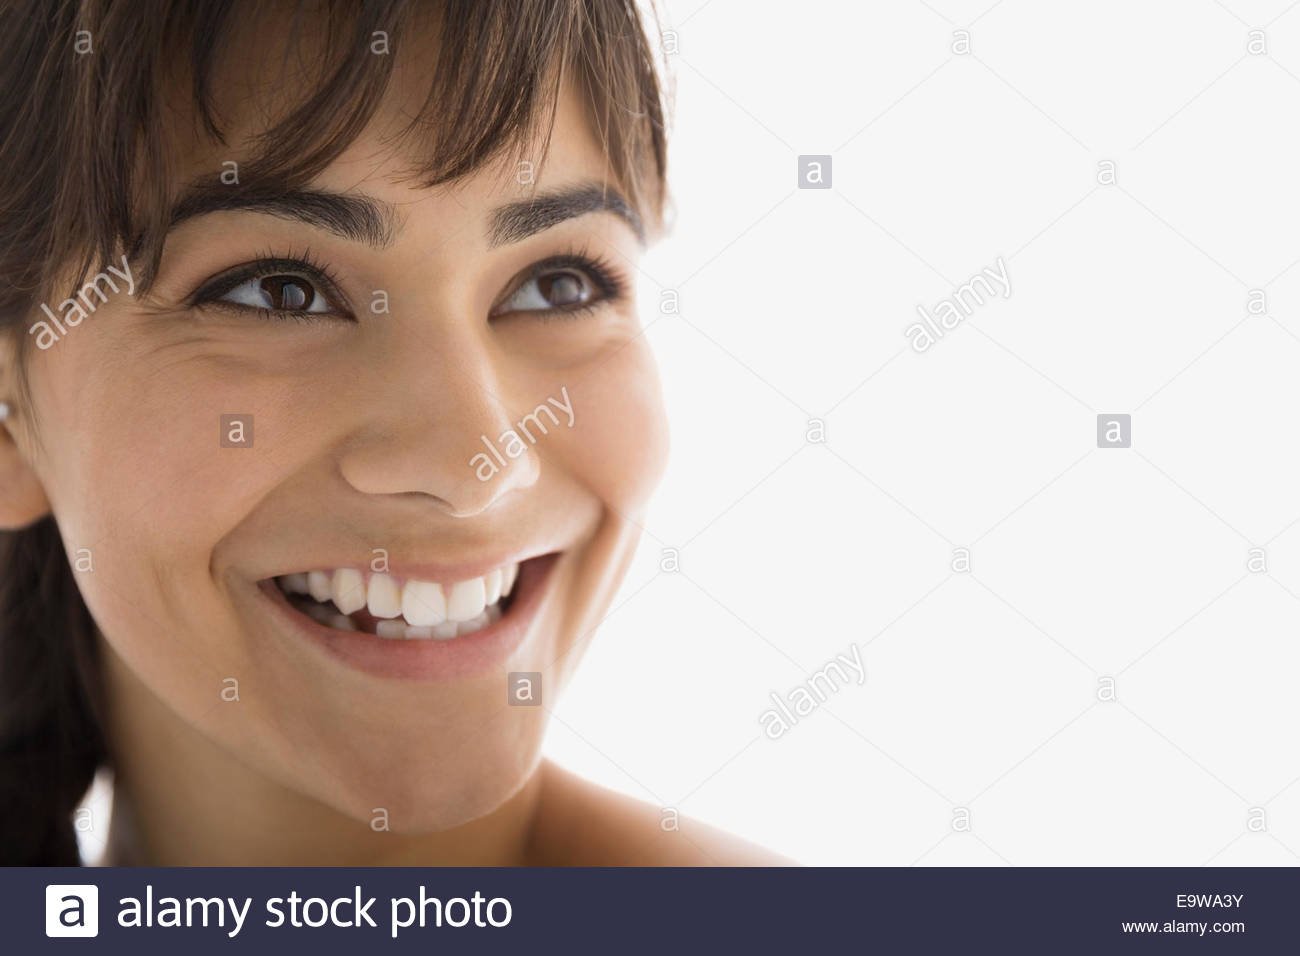 Close up of smiling brunette woman looking up - Stock Image